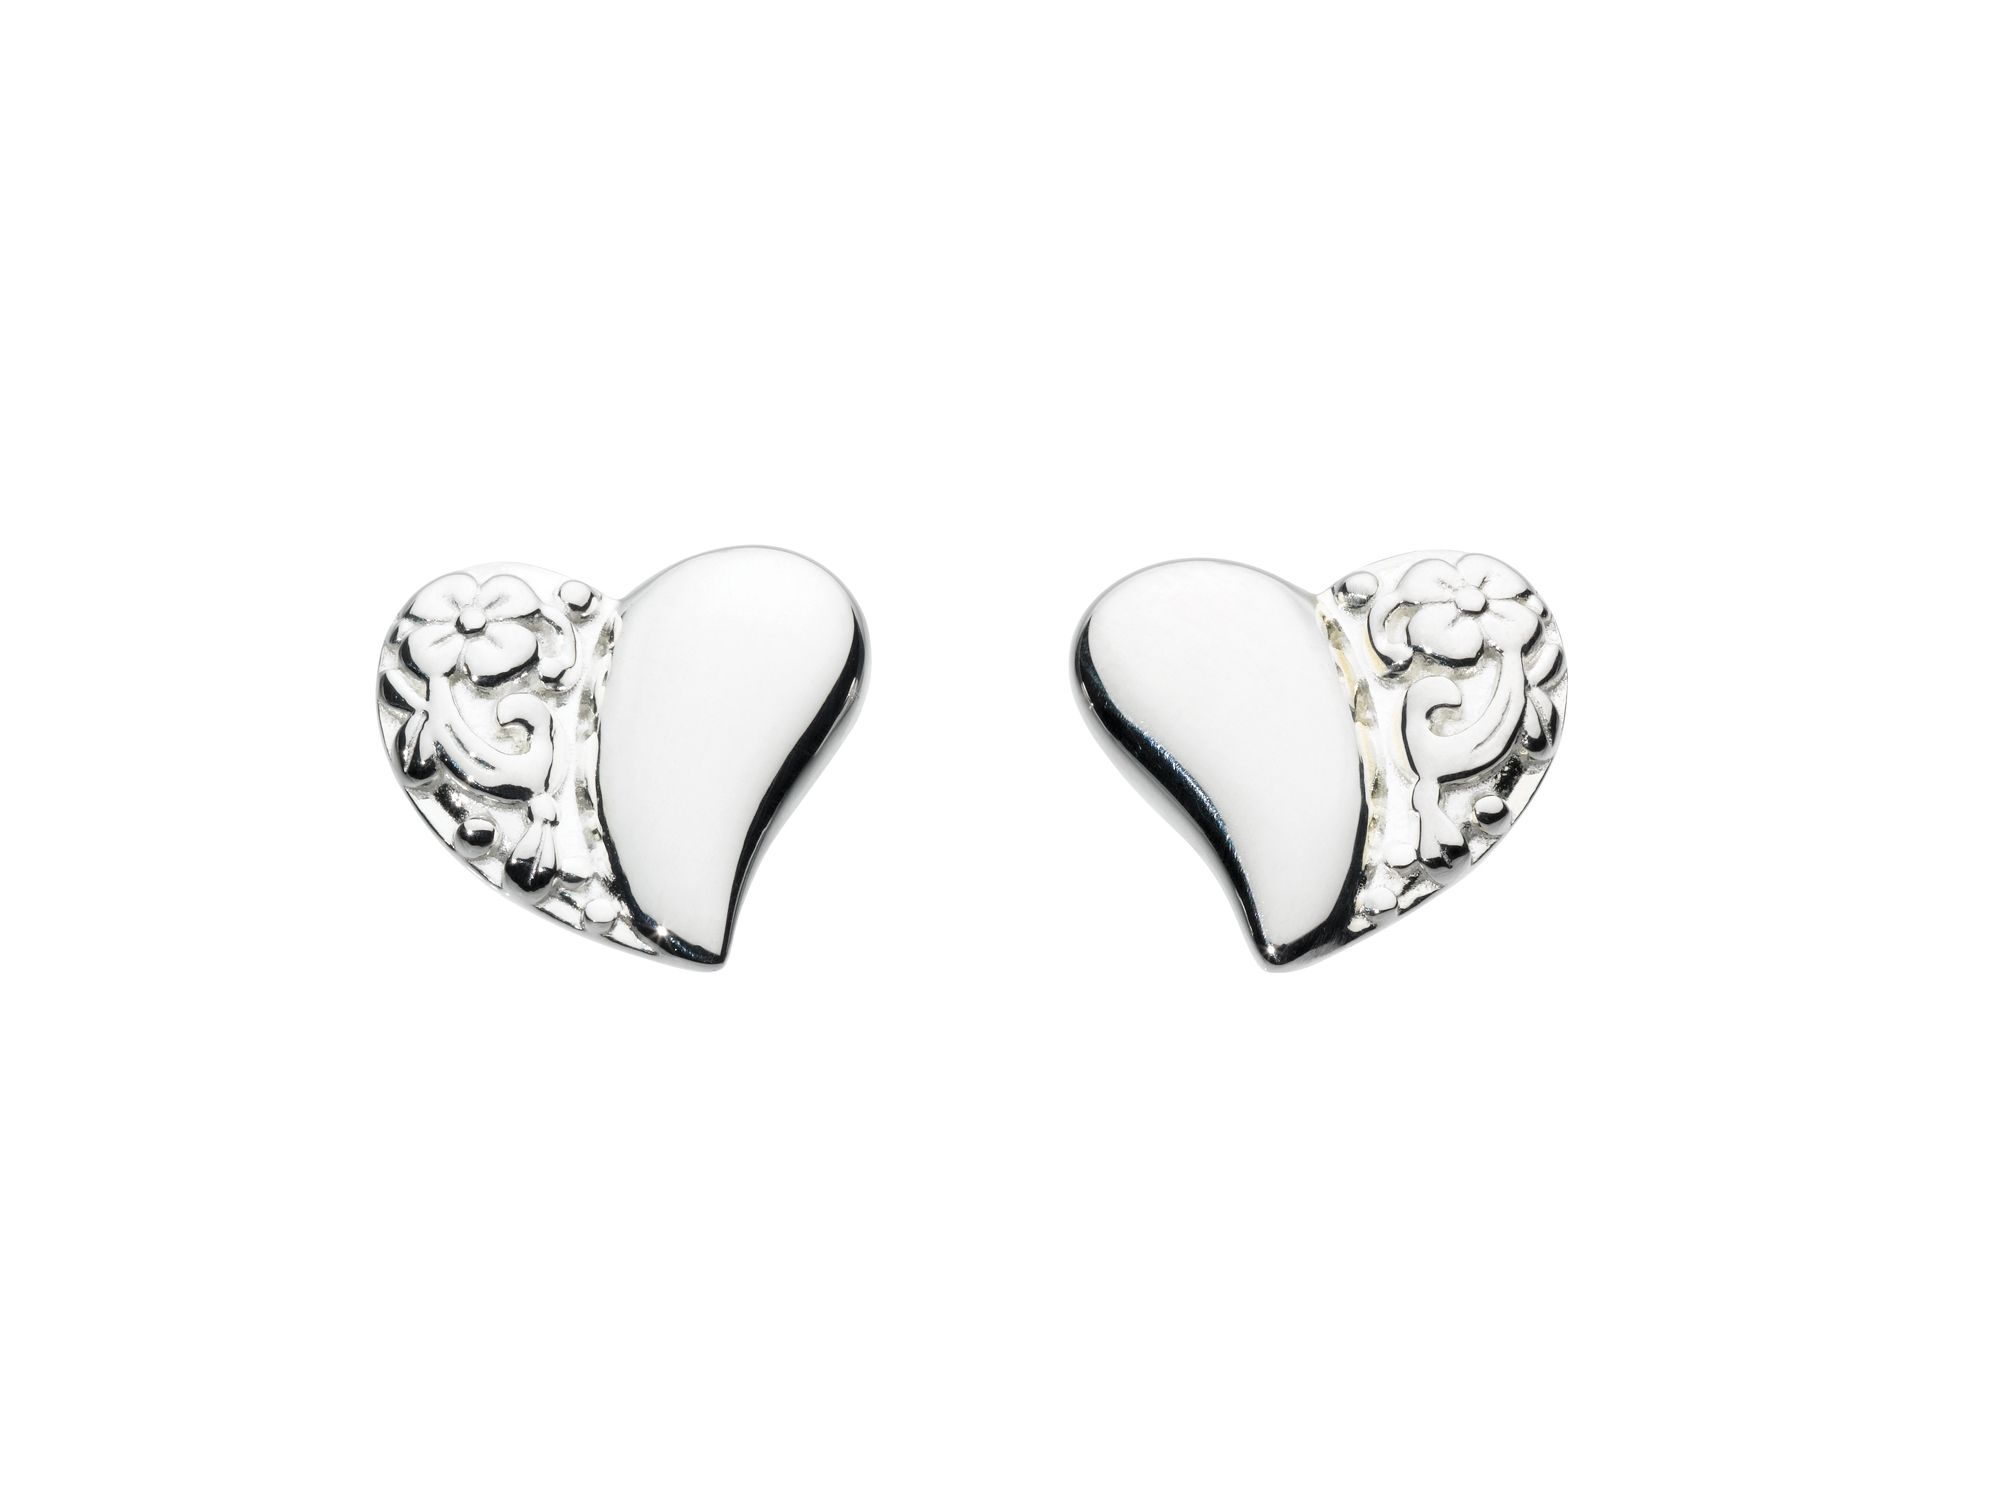 Enchanted Heart Stud Earrings